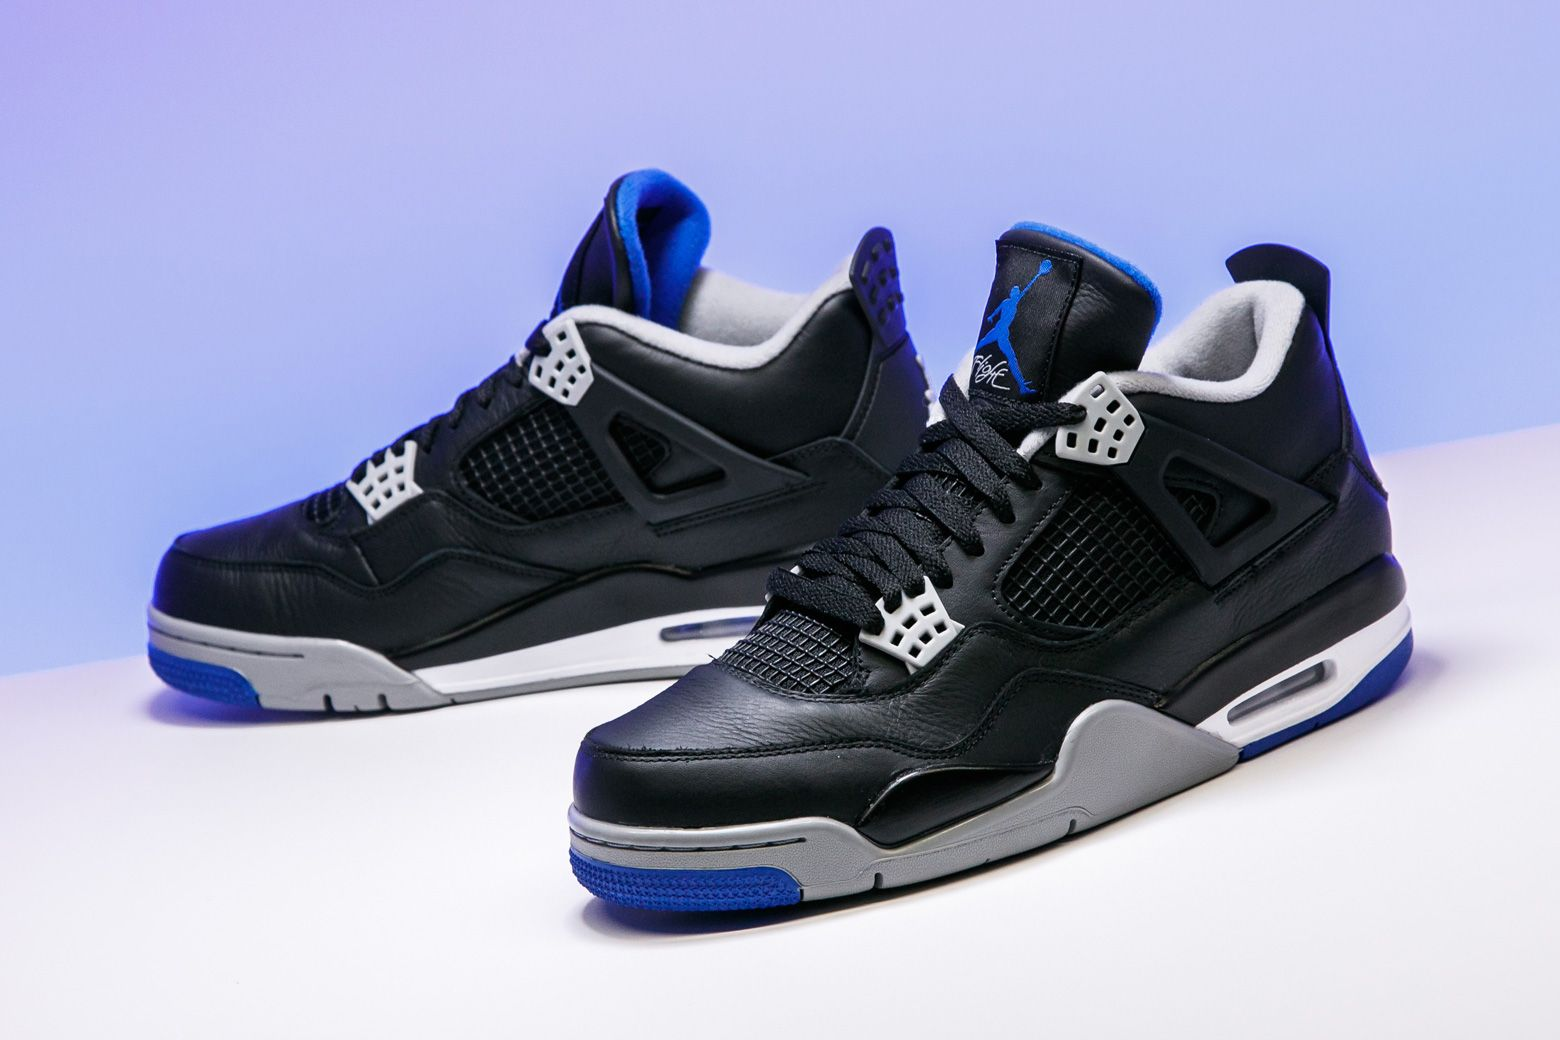 best sneakers ce3de 6a8ea Today, the early bird gets the Air Jordan 4 Retro